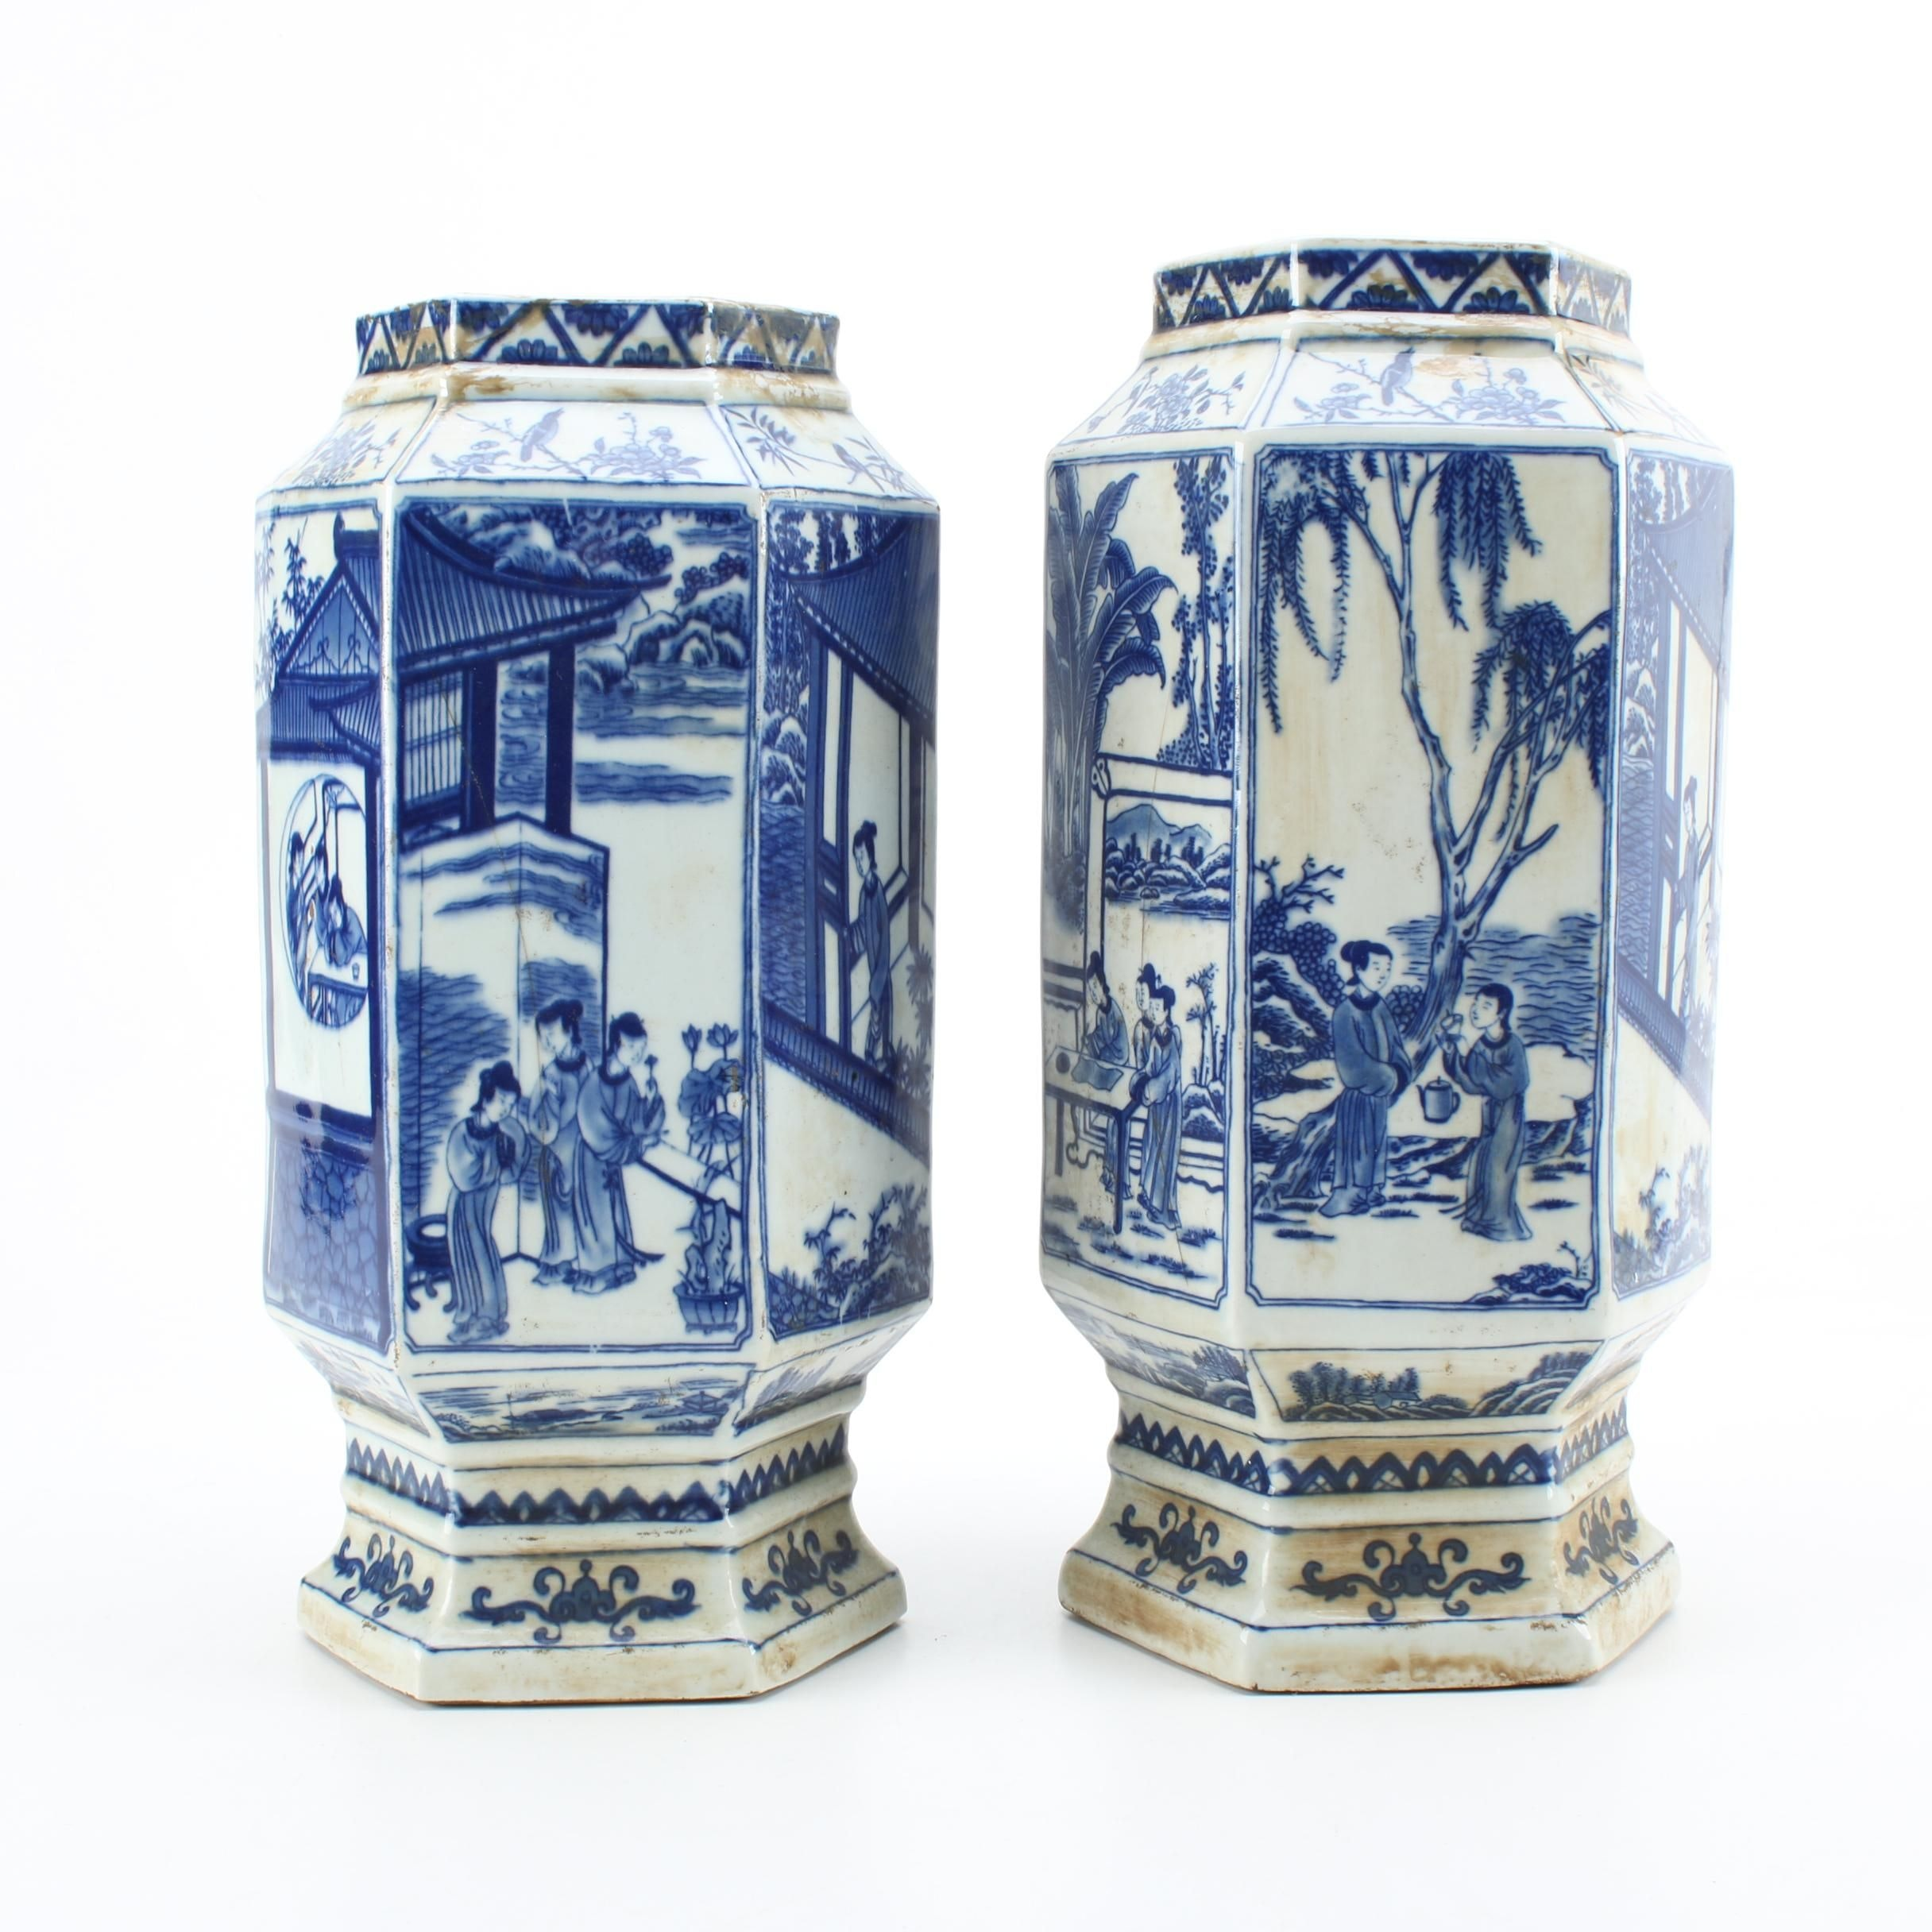 Pair of Chinese Porcelain Vases with Figural Vignettes